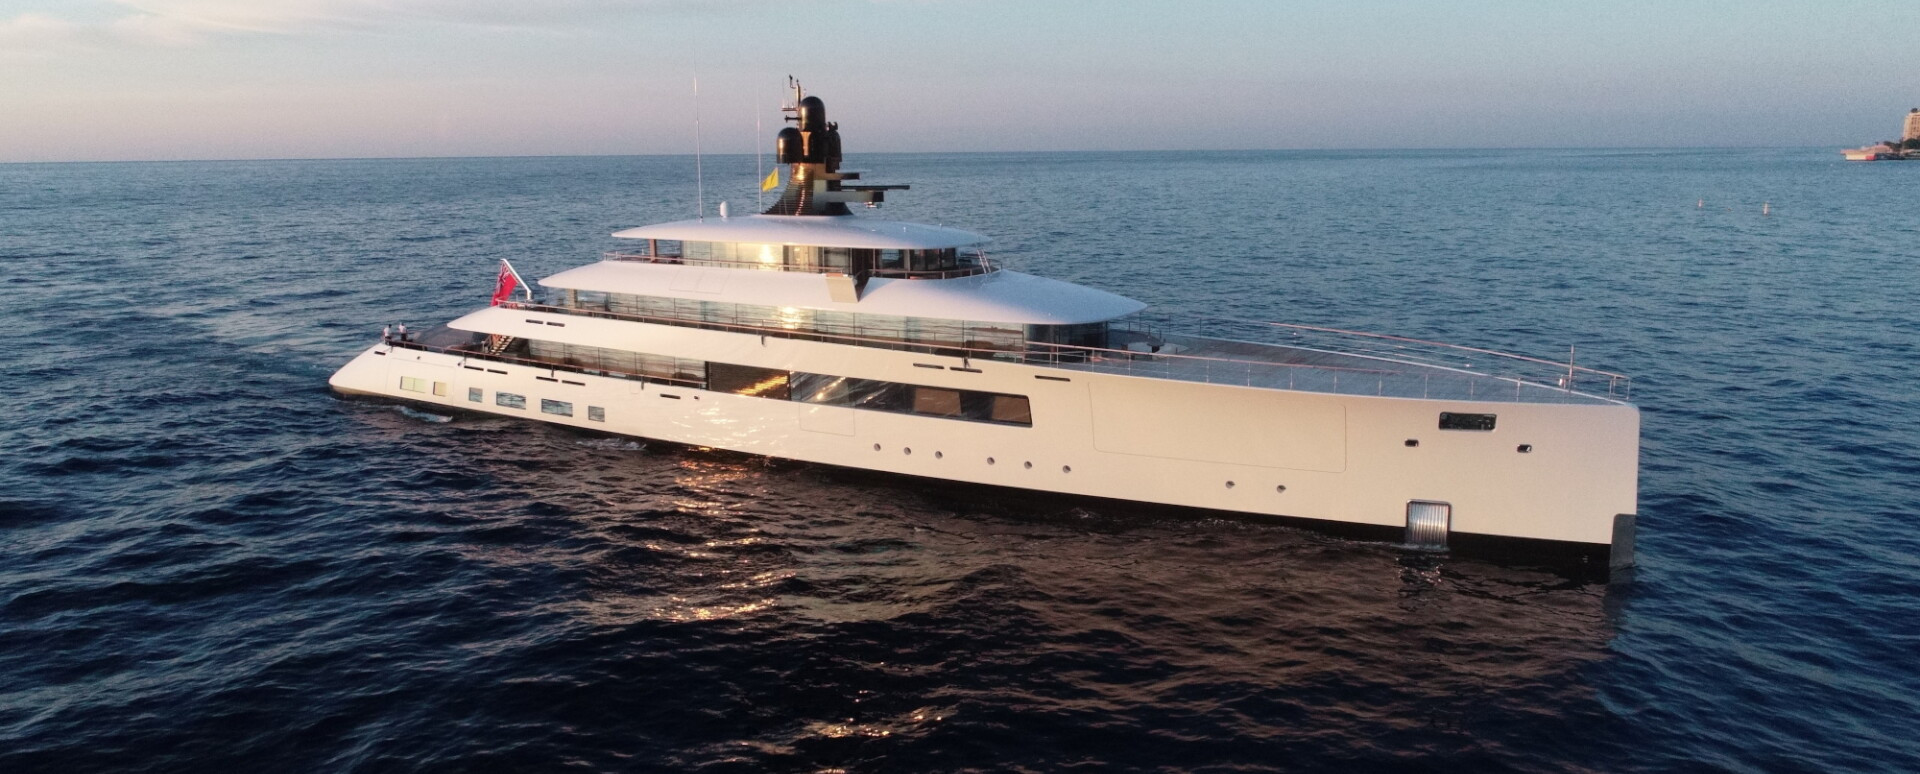 KK SUPERYACHTS proudly announces the delivery of 77.25m Feadship M/Y SYZYGY 818